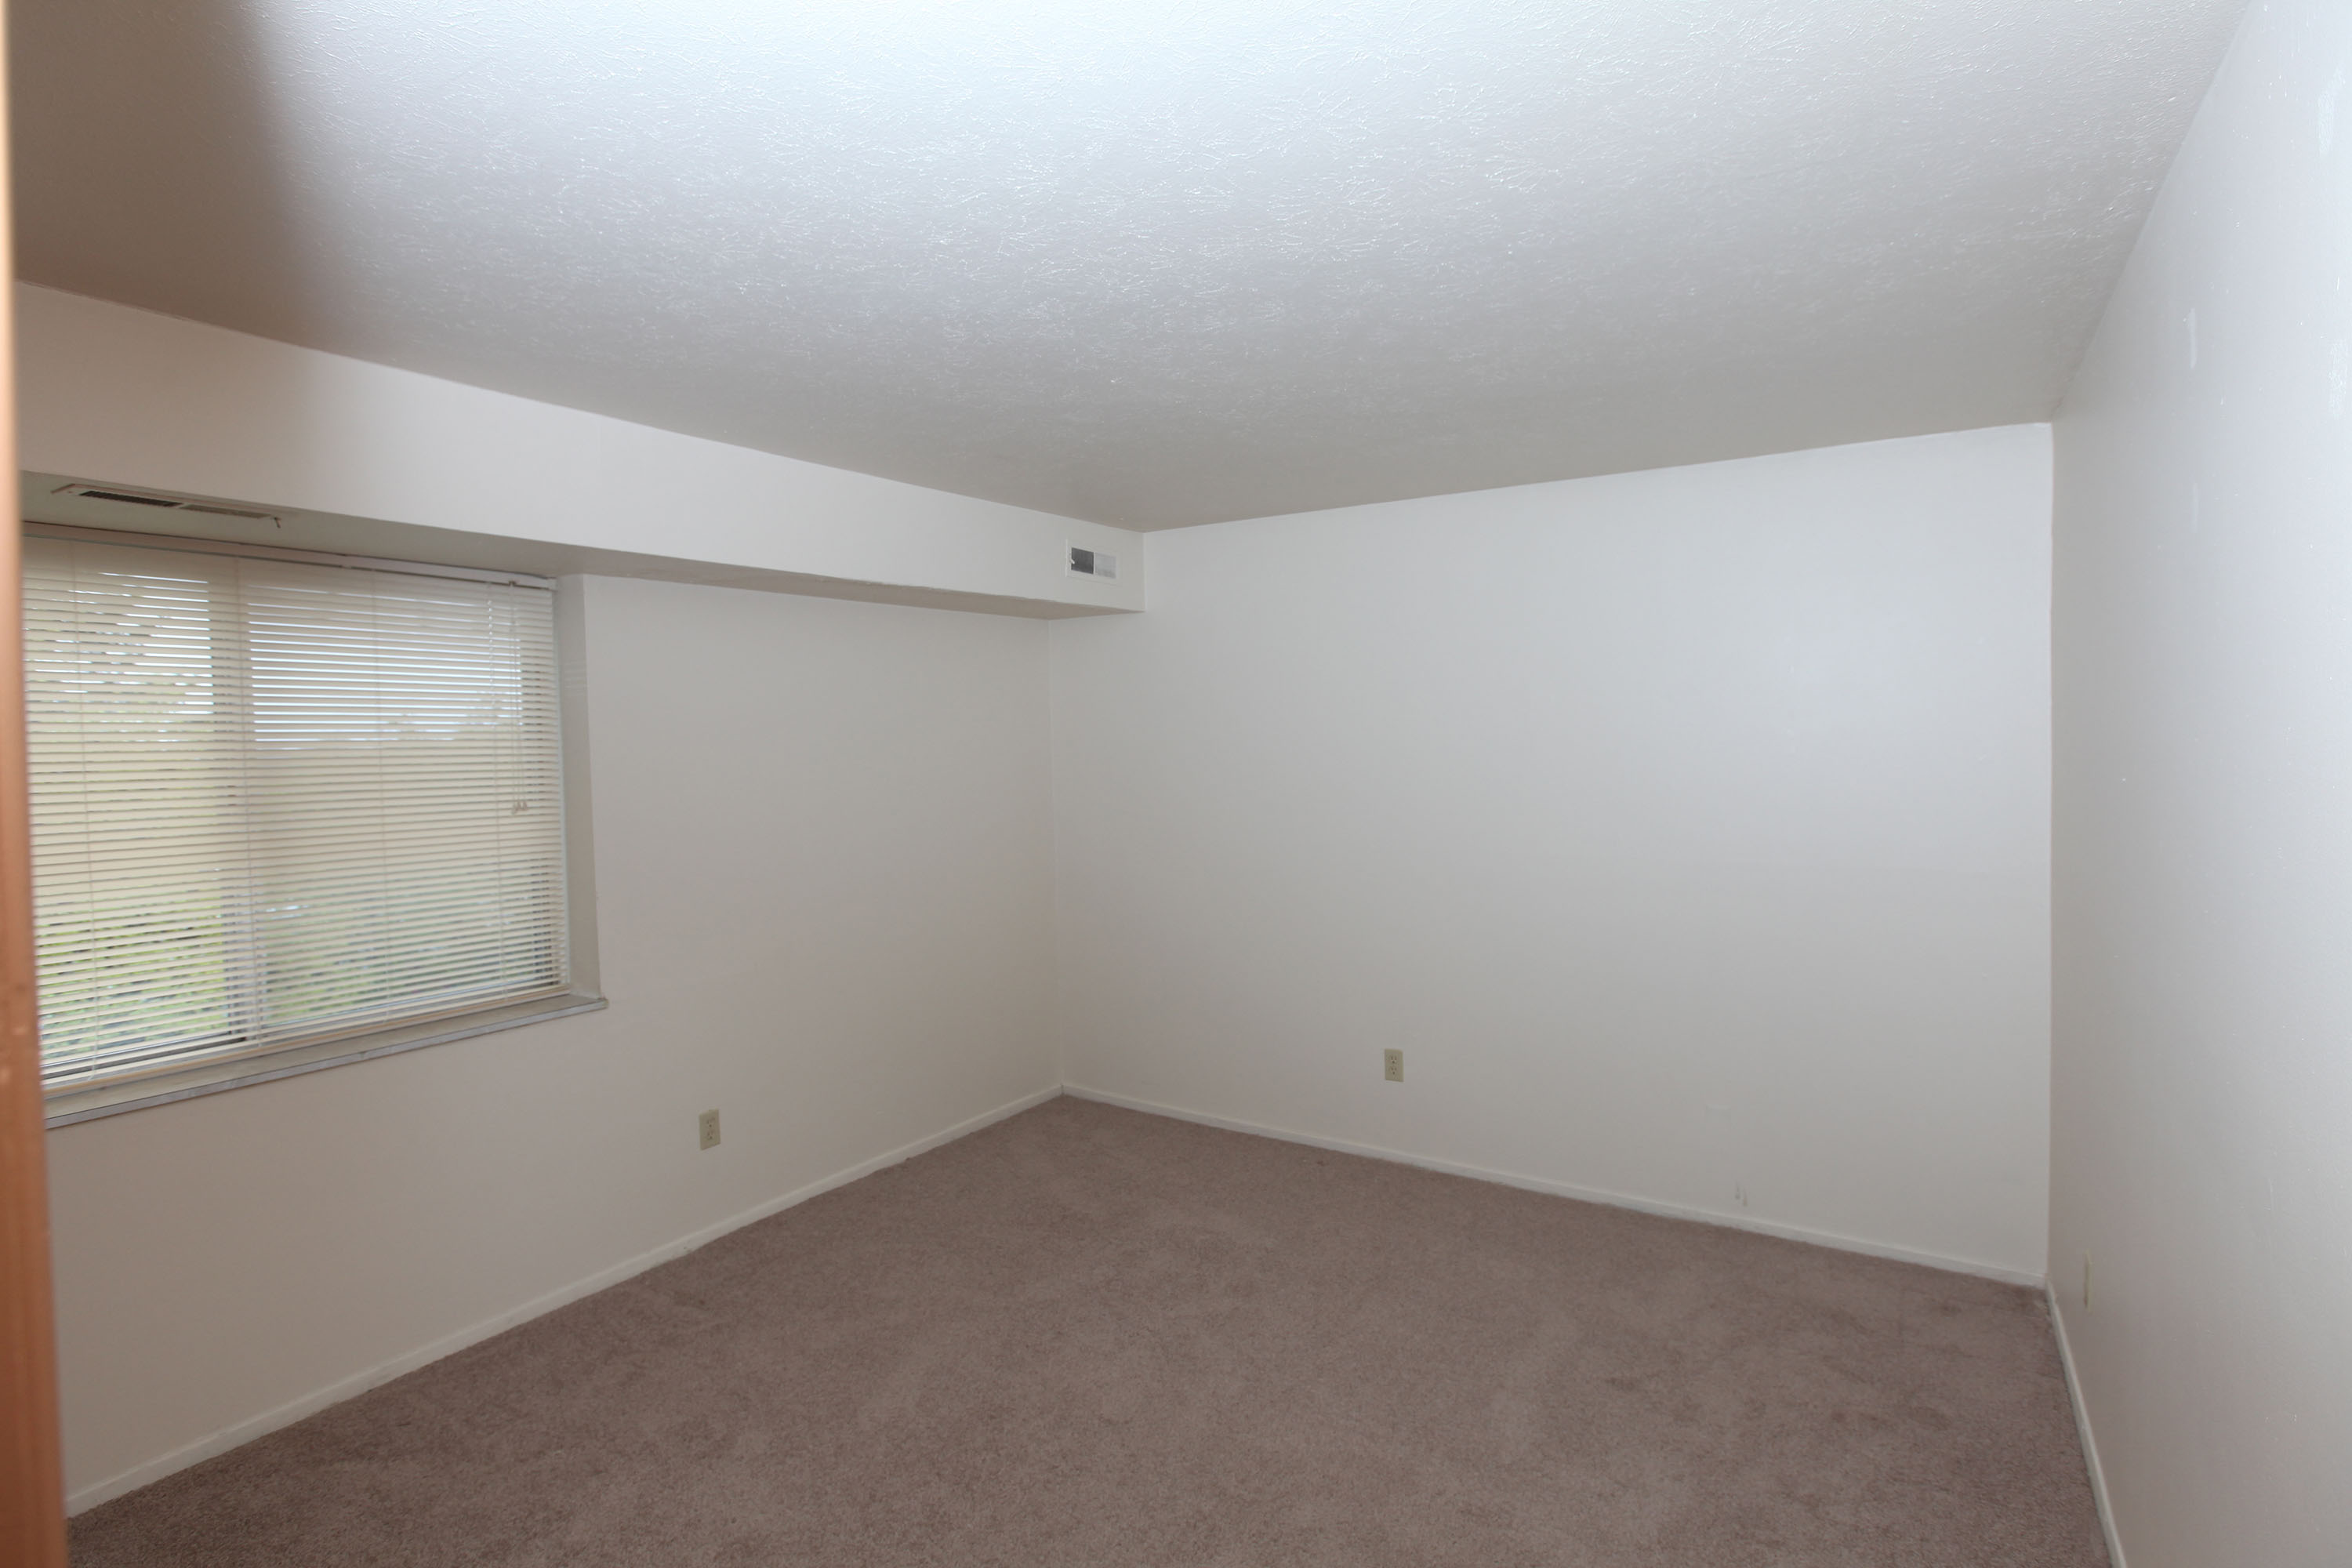 2C Bedroom #2 at the Greenridge on Euclid Apartments in Euclid, OH